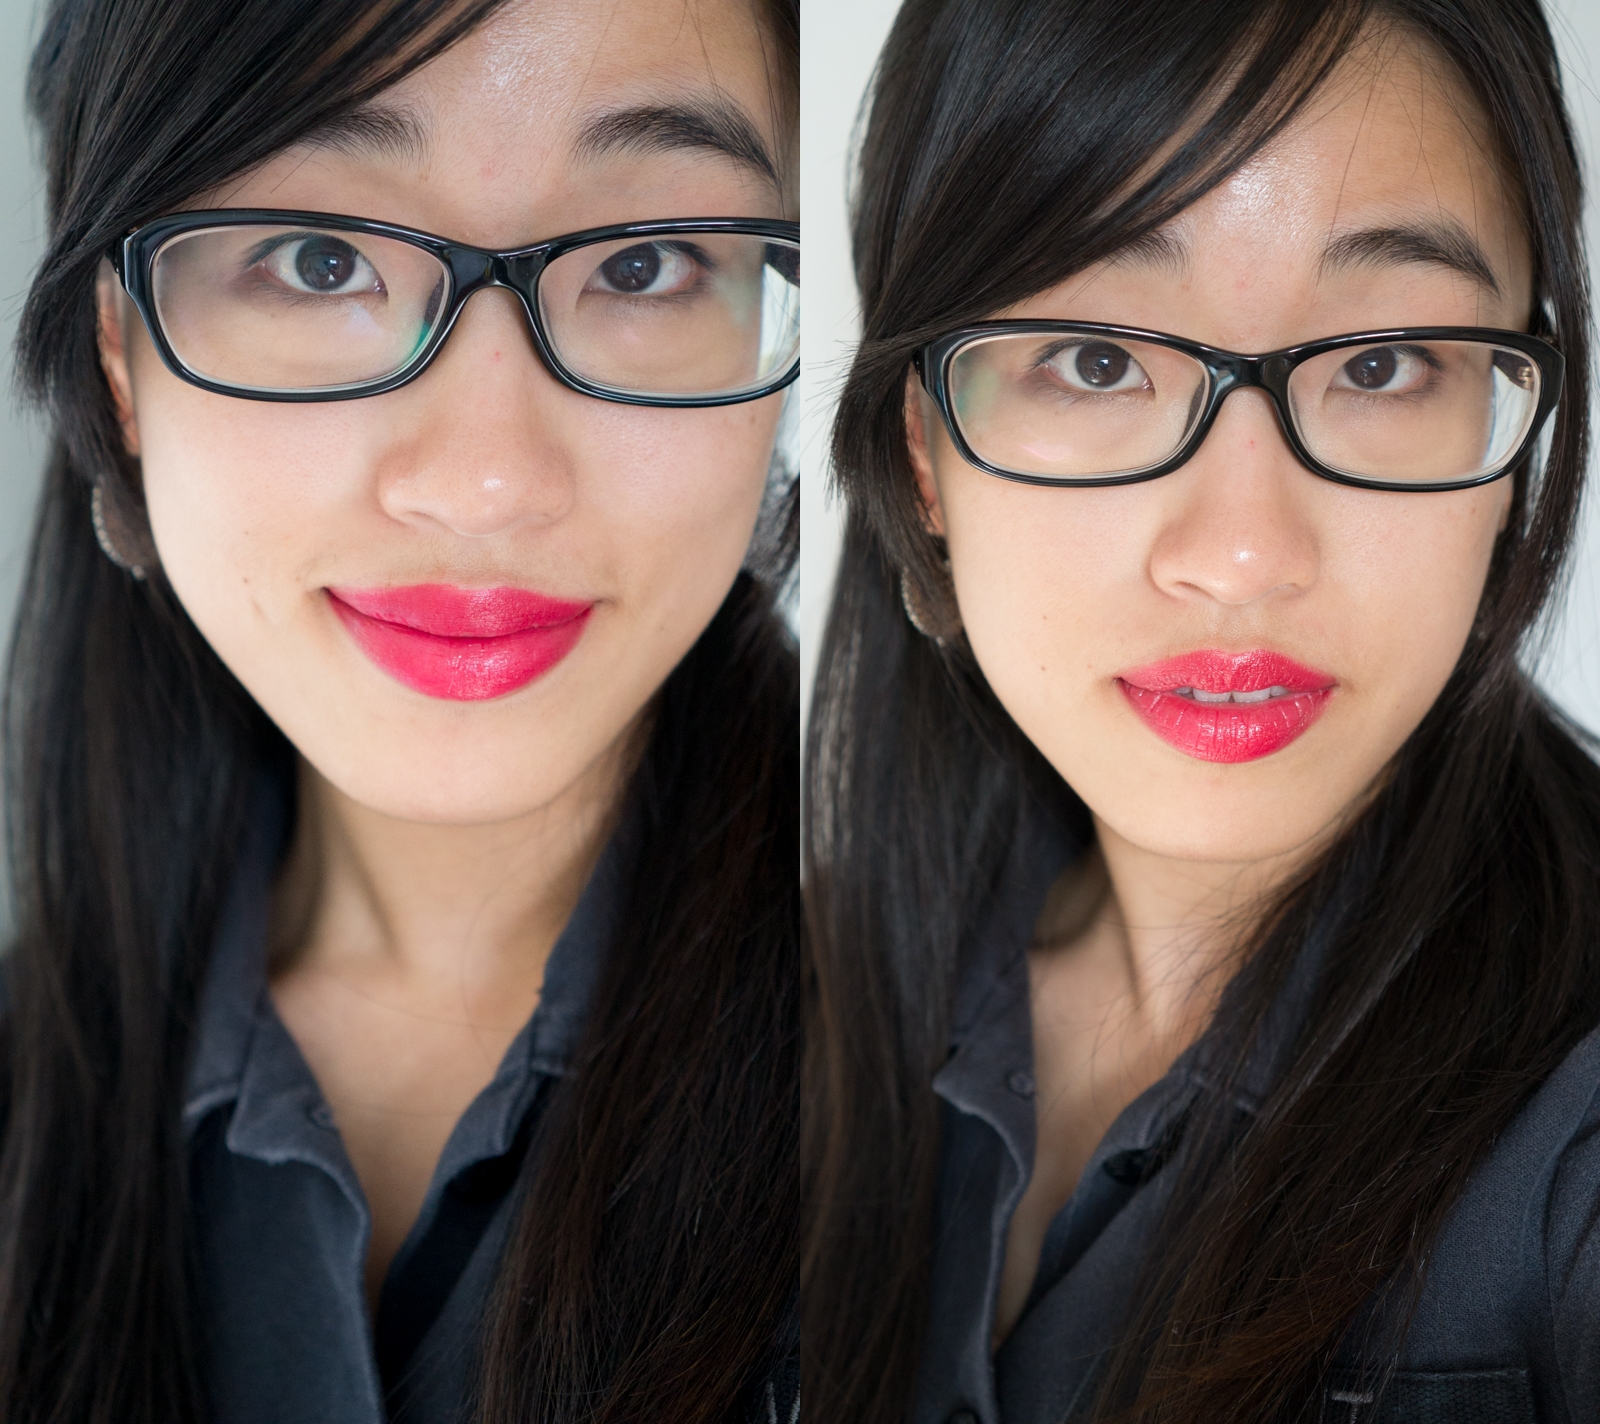 Revlon Ultra HD Lipstick in Poinsettia